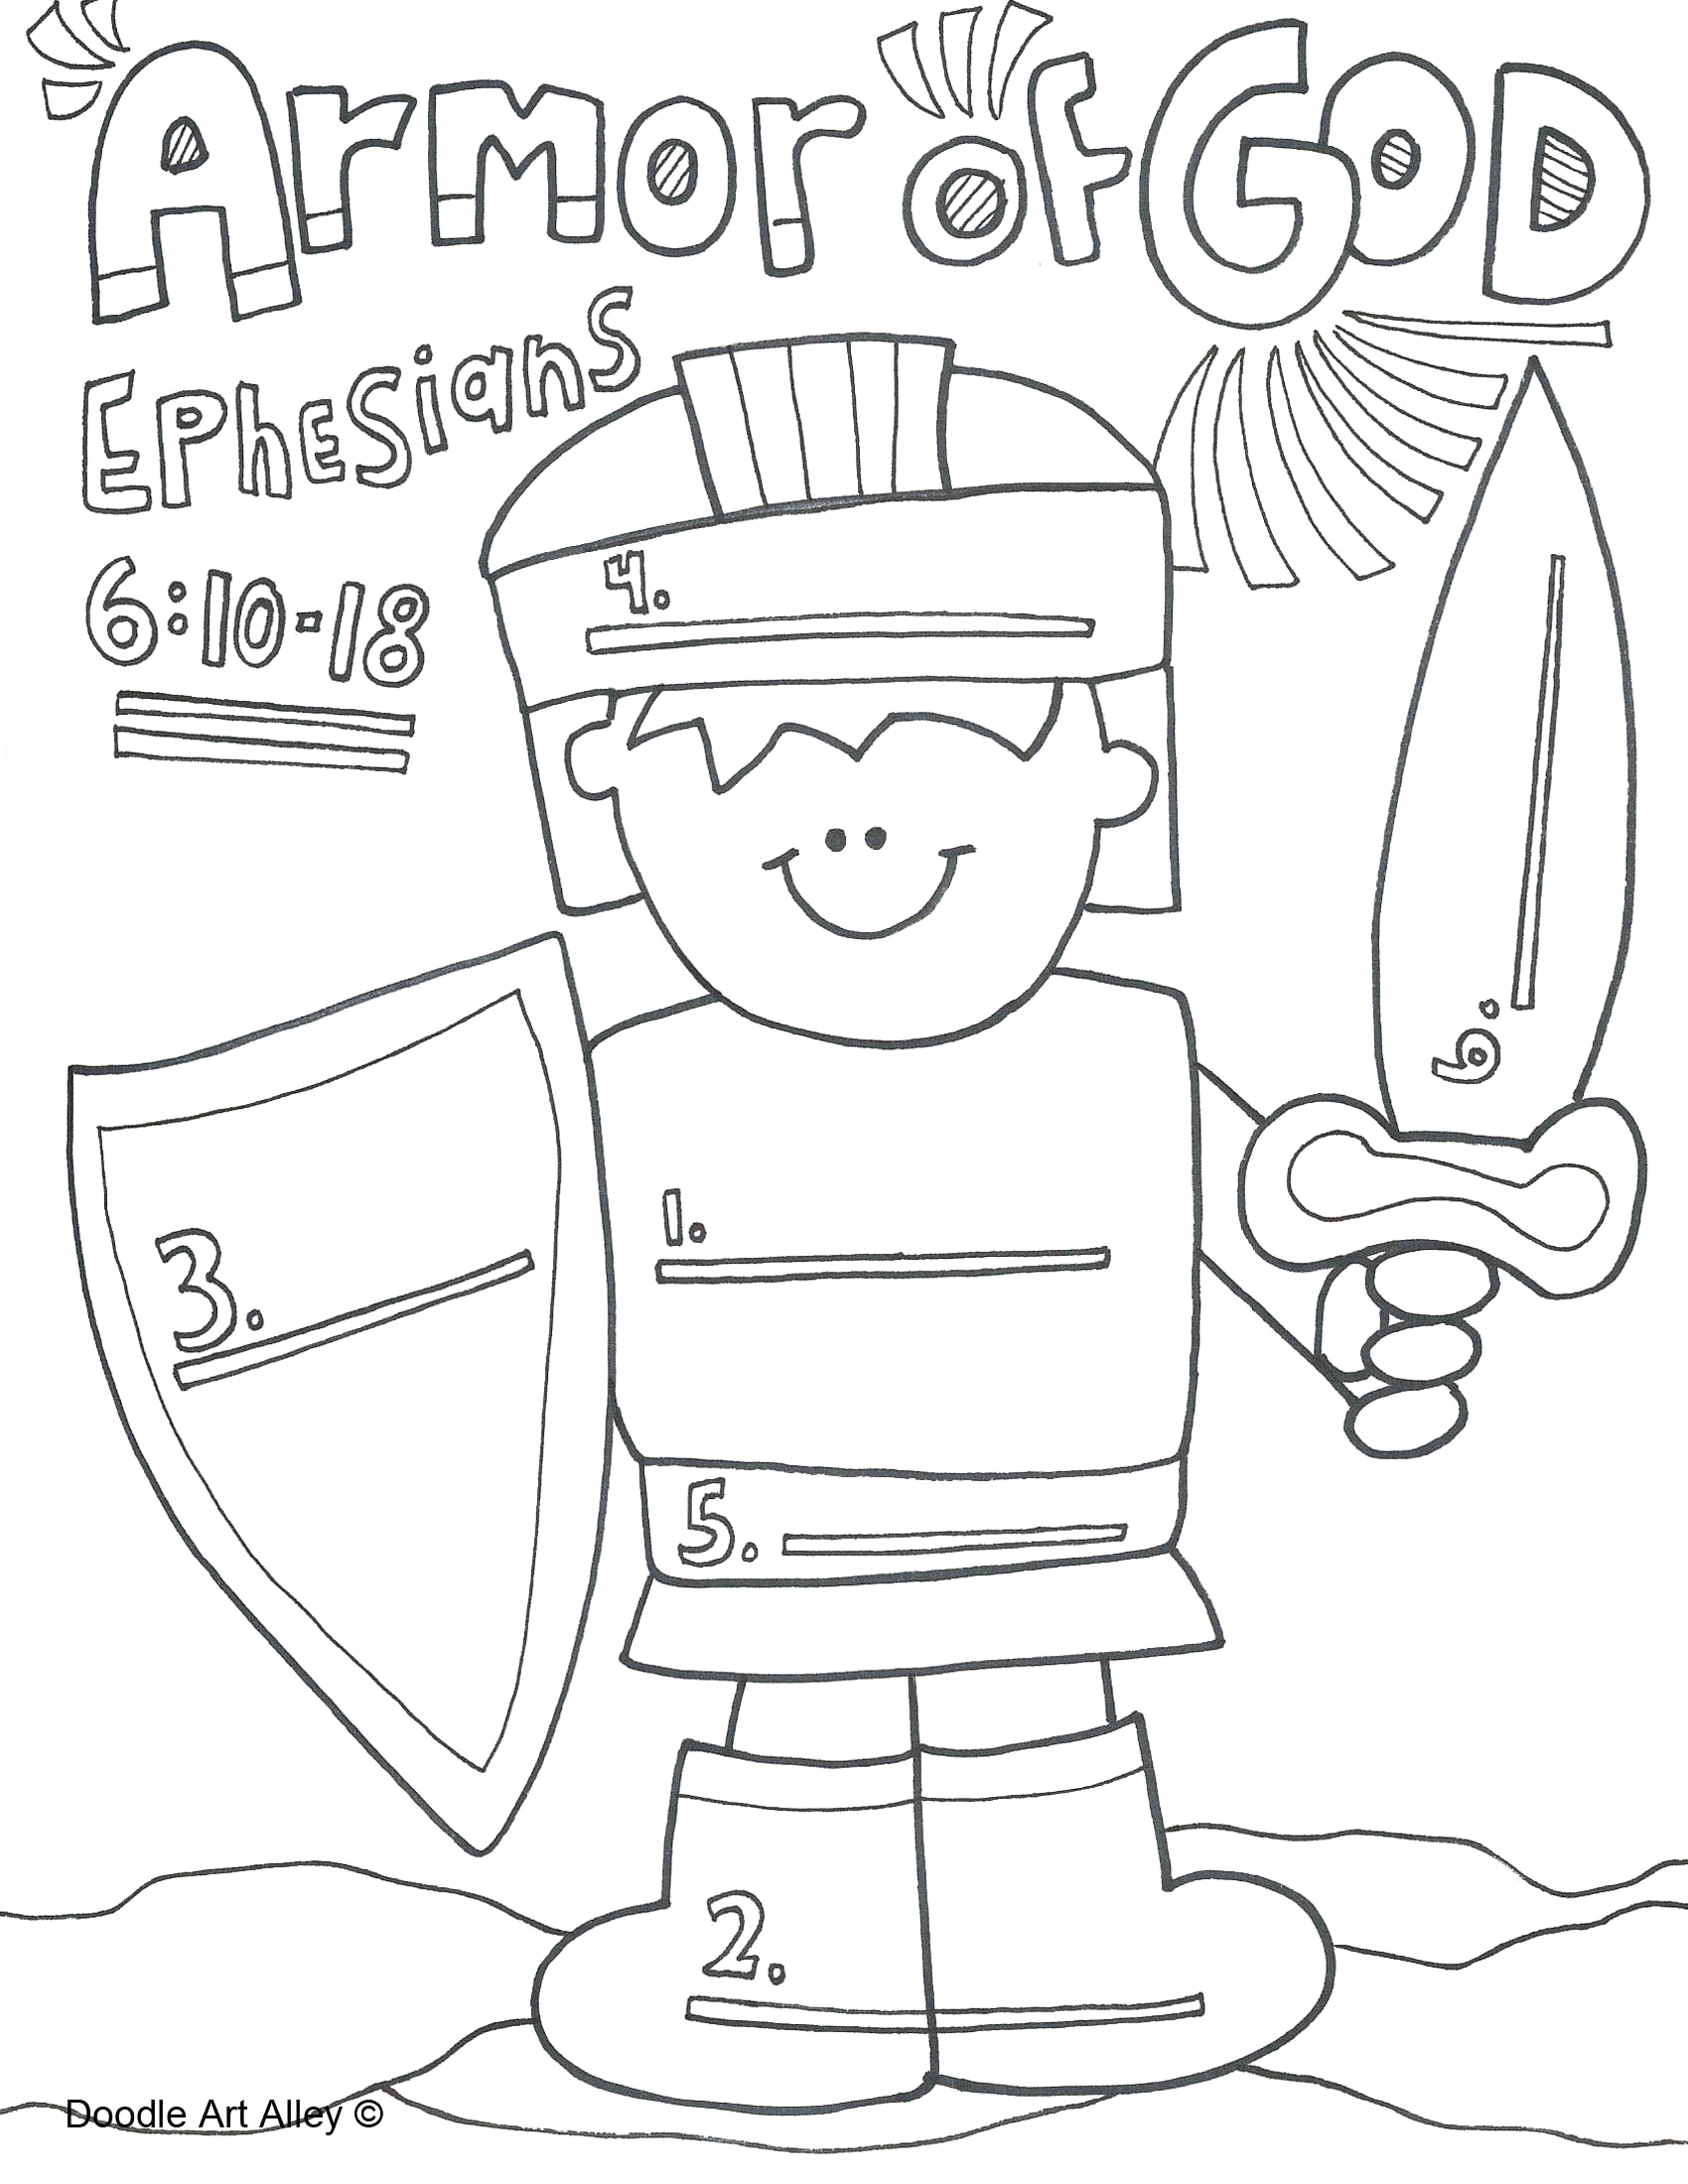 Armor Of God for Kids Coloring Pages Armor God Coloring Page Unique Salvation Bible Coloring